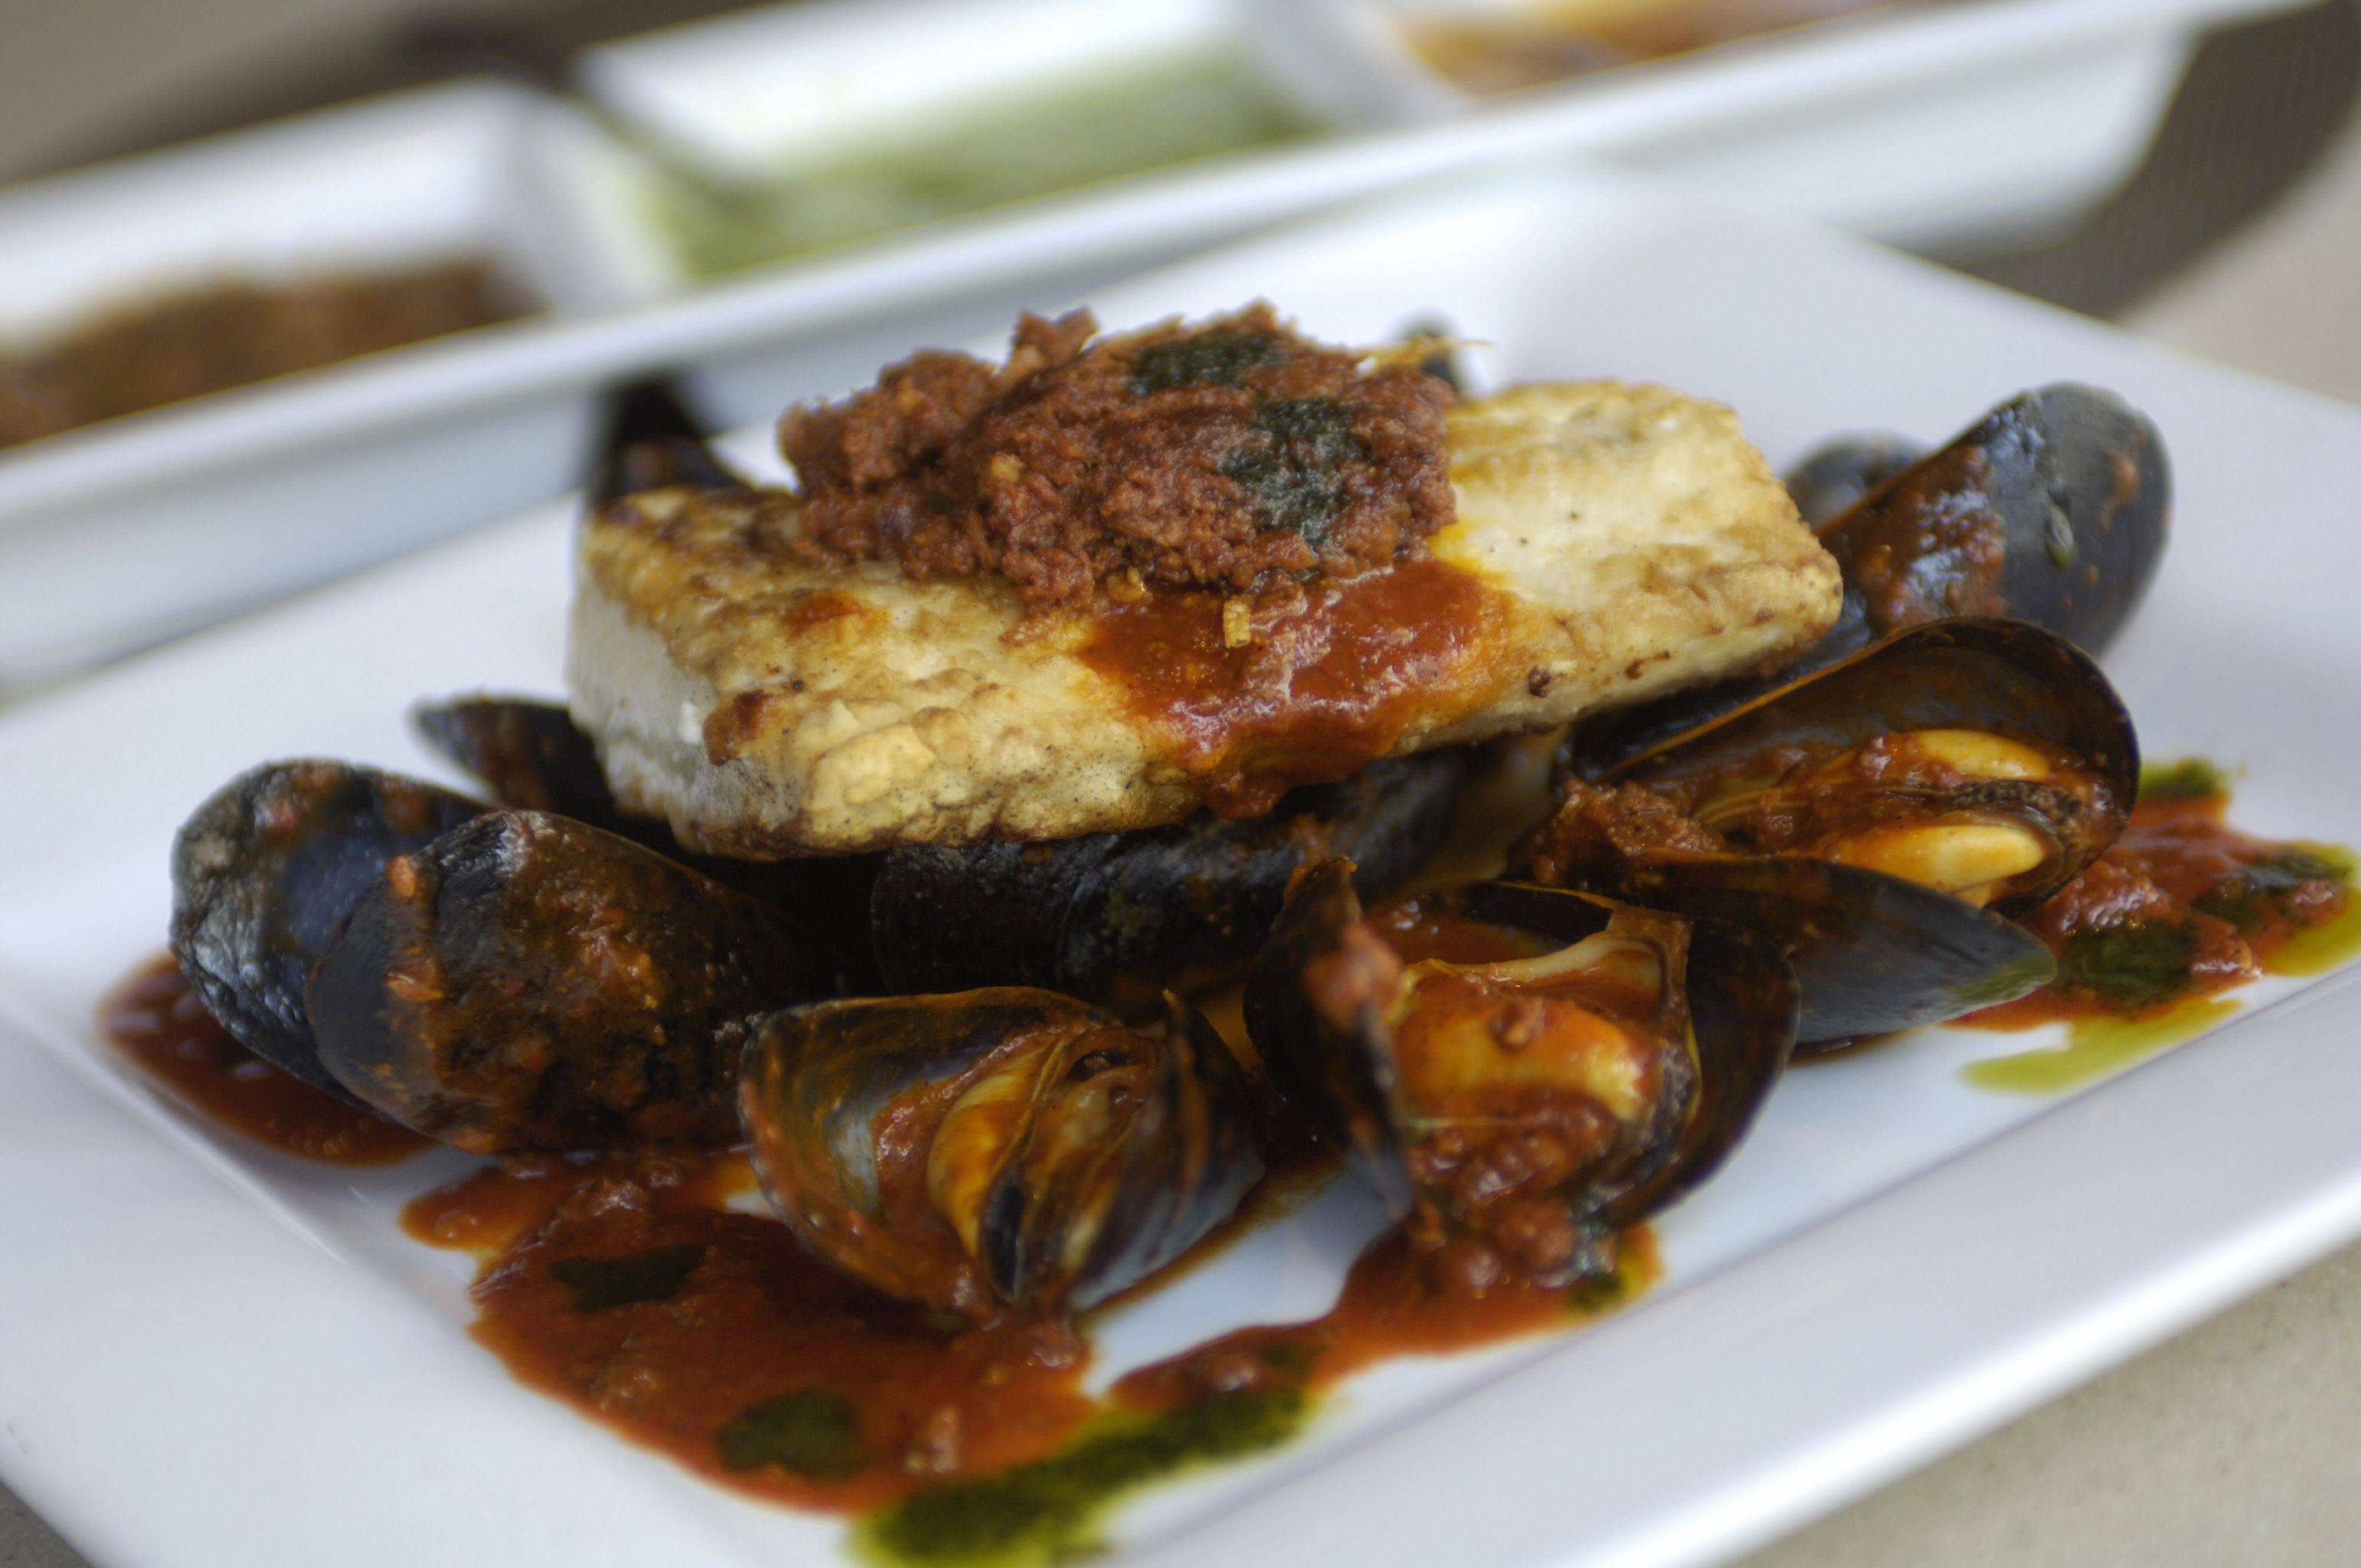 JOE LEWNARD/jlewnard@dailyherald.com Chorizo with mussels and seabass at Mago restaurant, Arlington Heights.